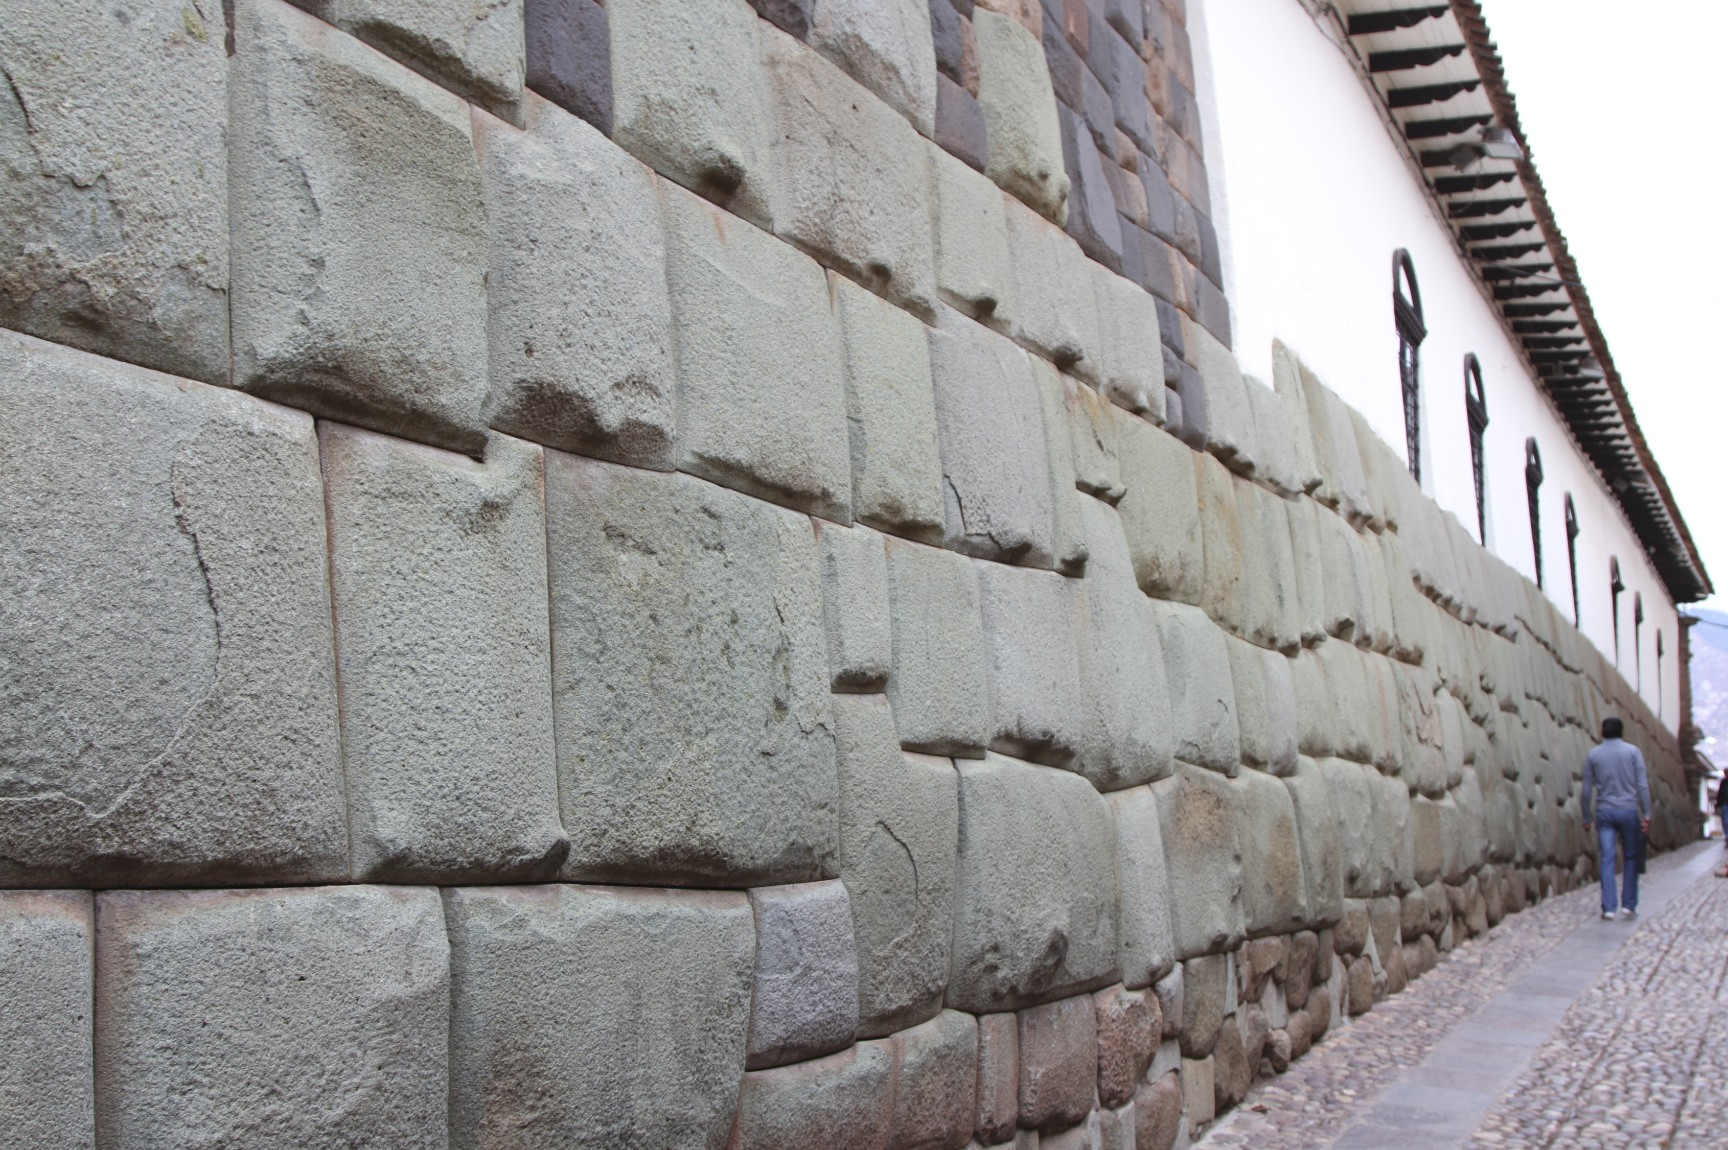 Cusco, ancient capital of the Inca empire ...Inca Buildings And Structures